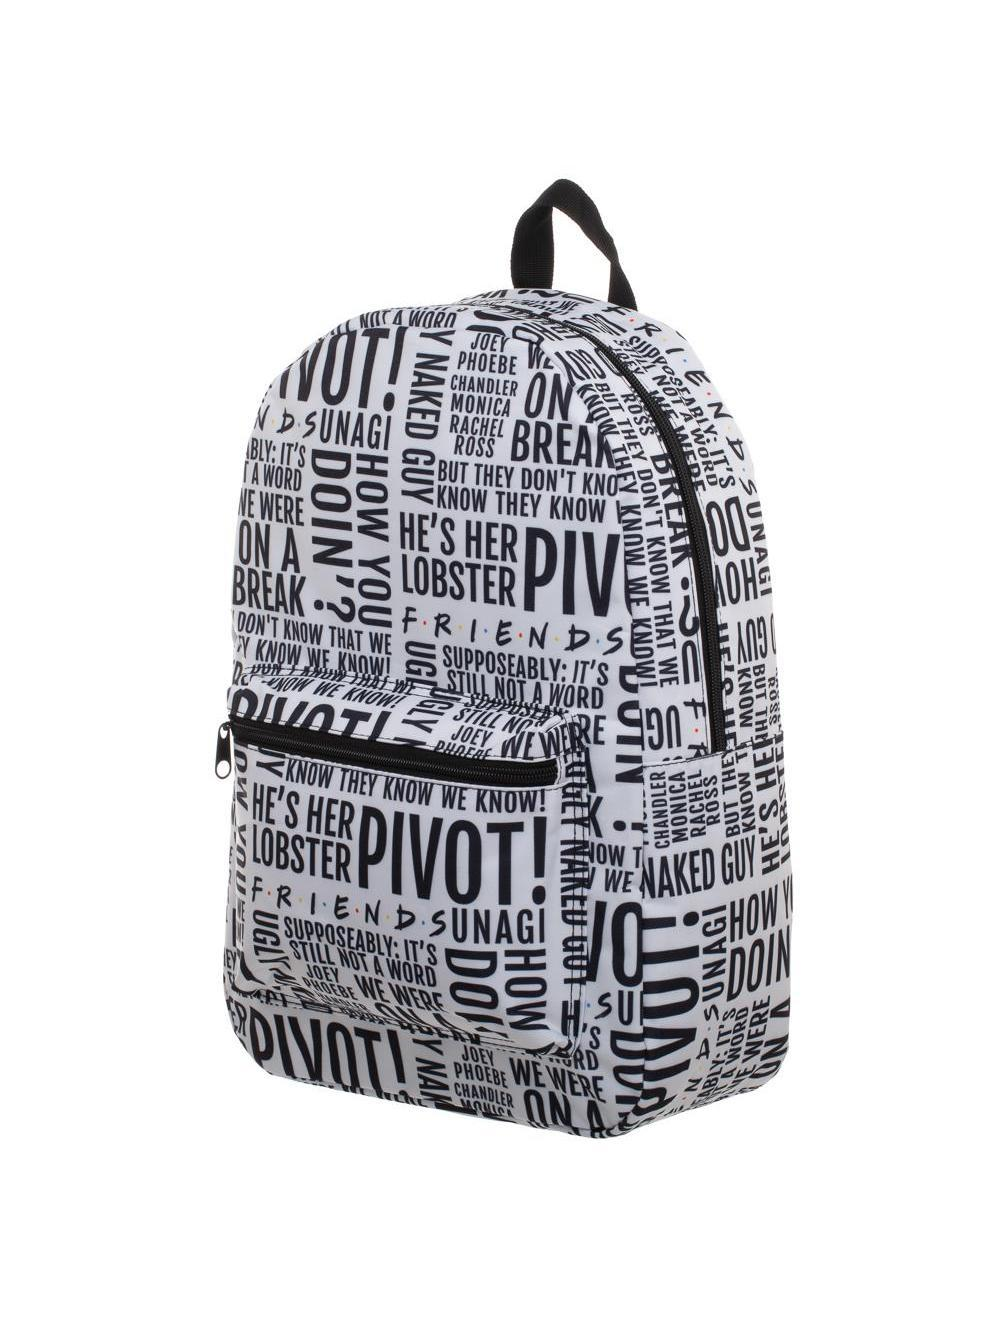 FRIENDS - Quotes Quickturn Backpack